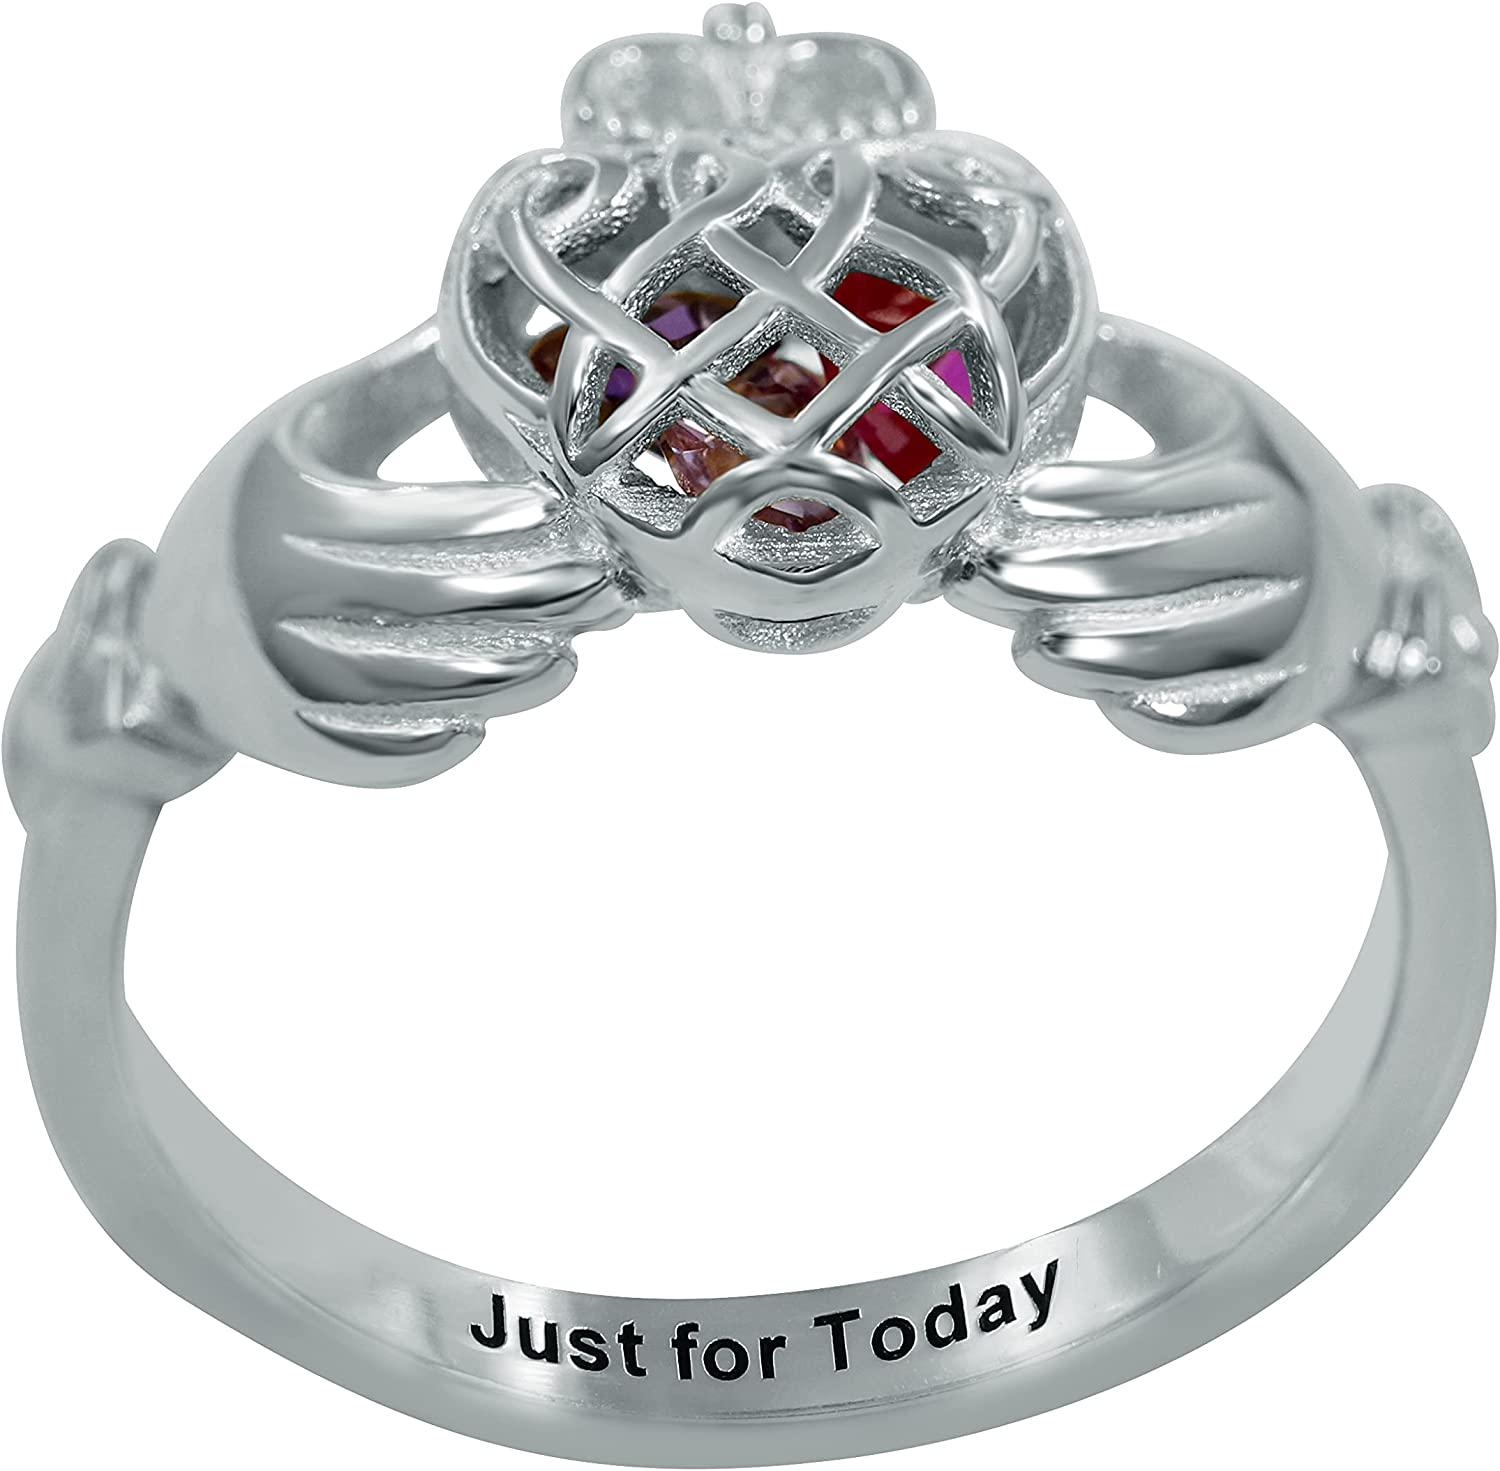 Claddagh Ring Personalized Animer and We OFFer at cheap prices price revision Name Engraved Birthstone Love Cro